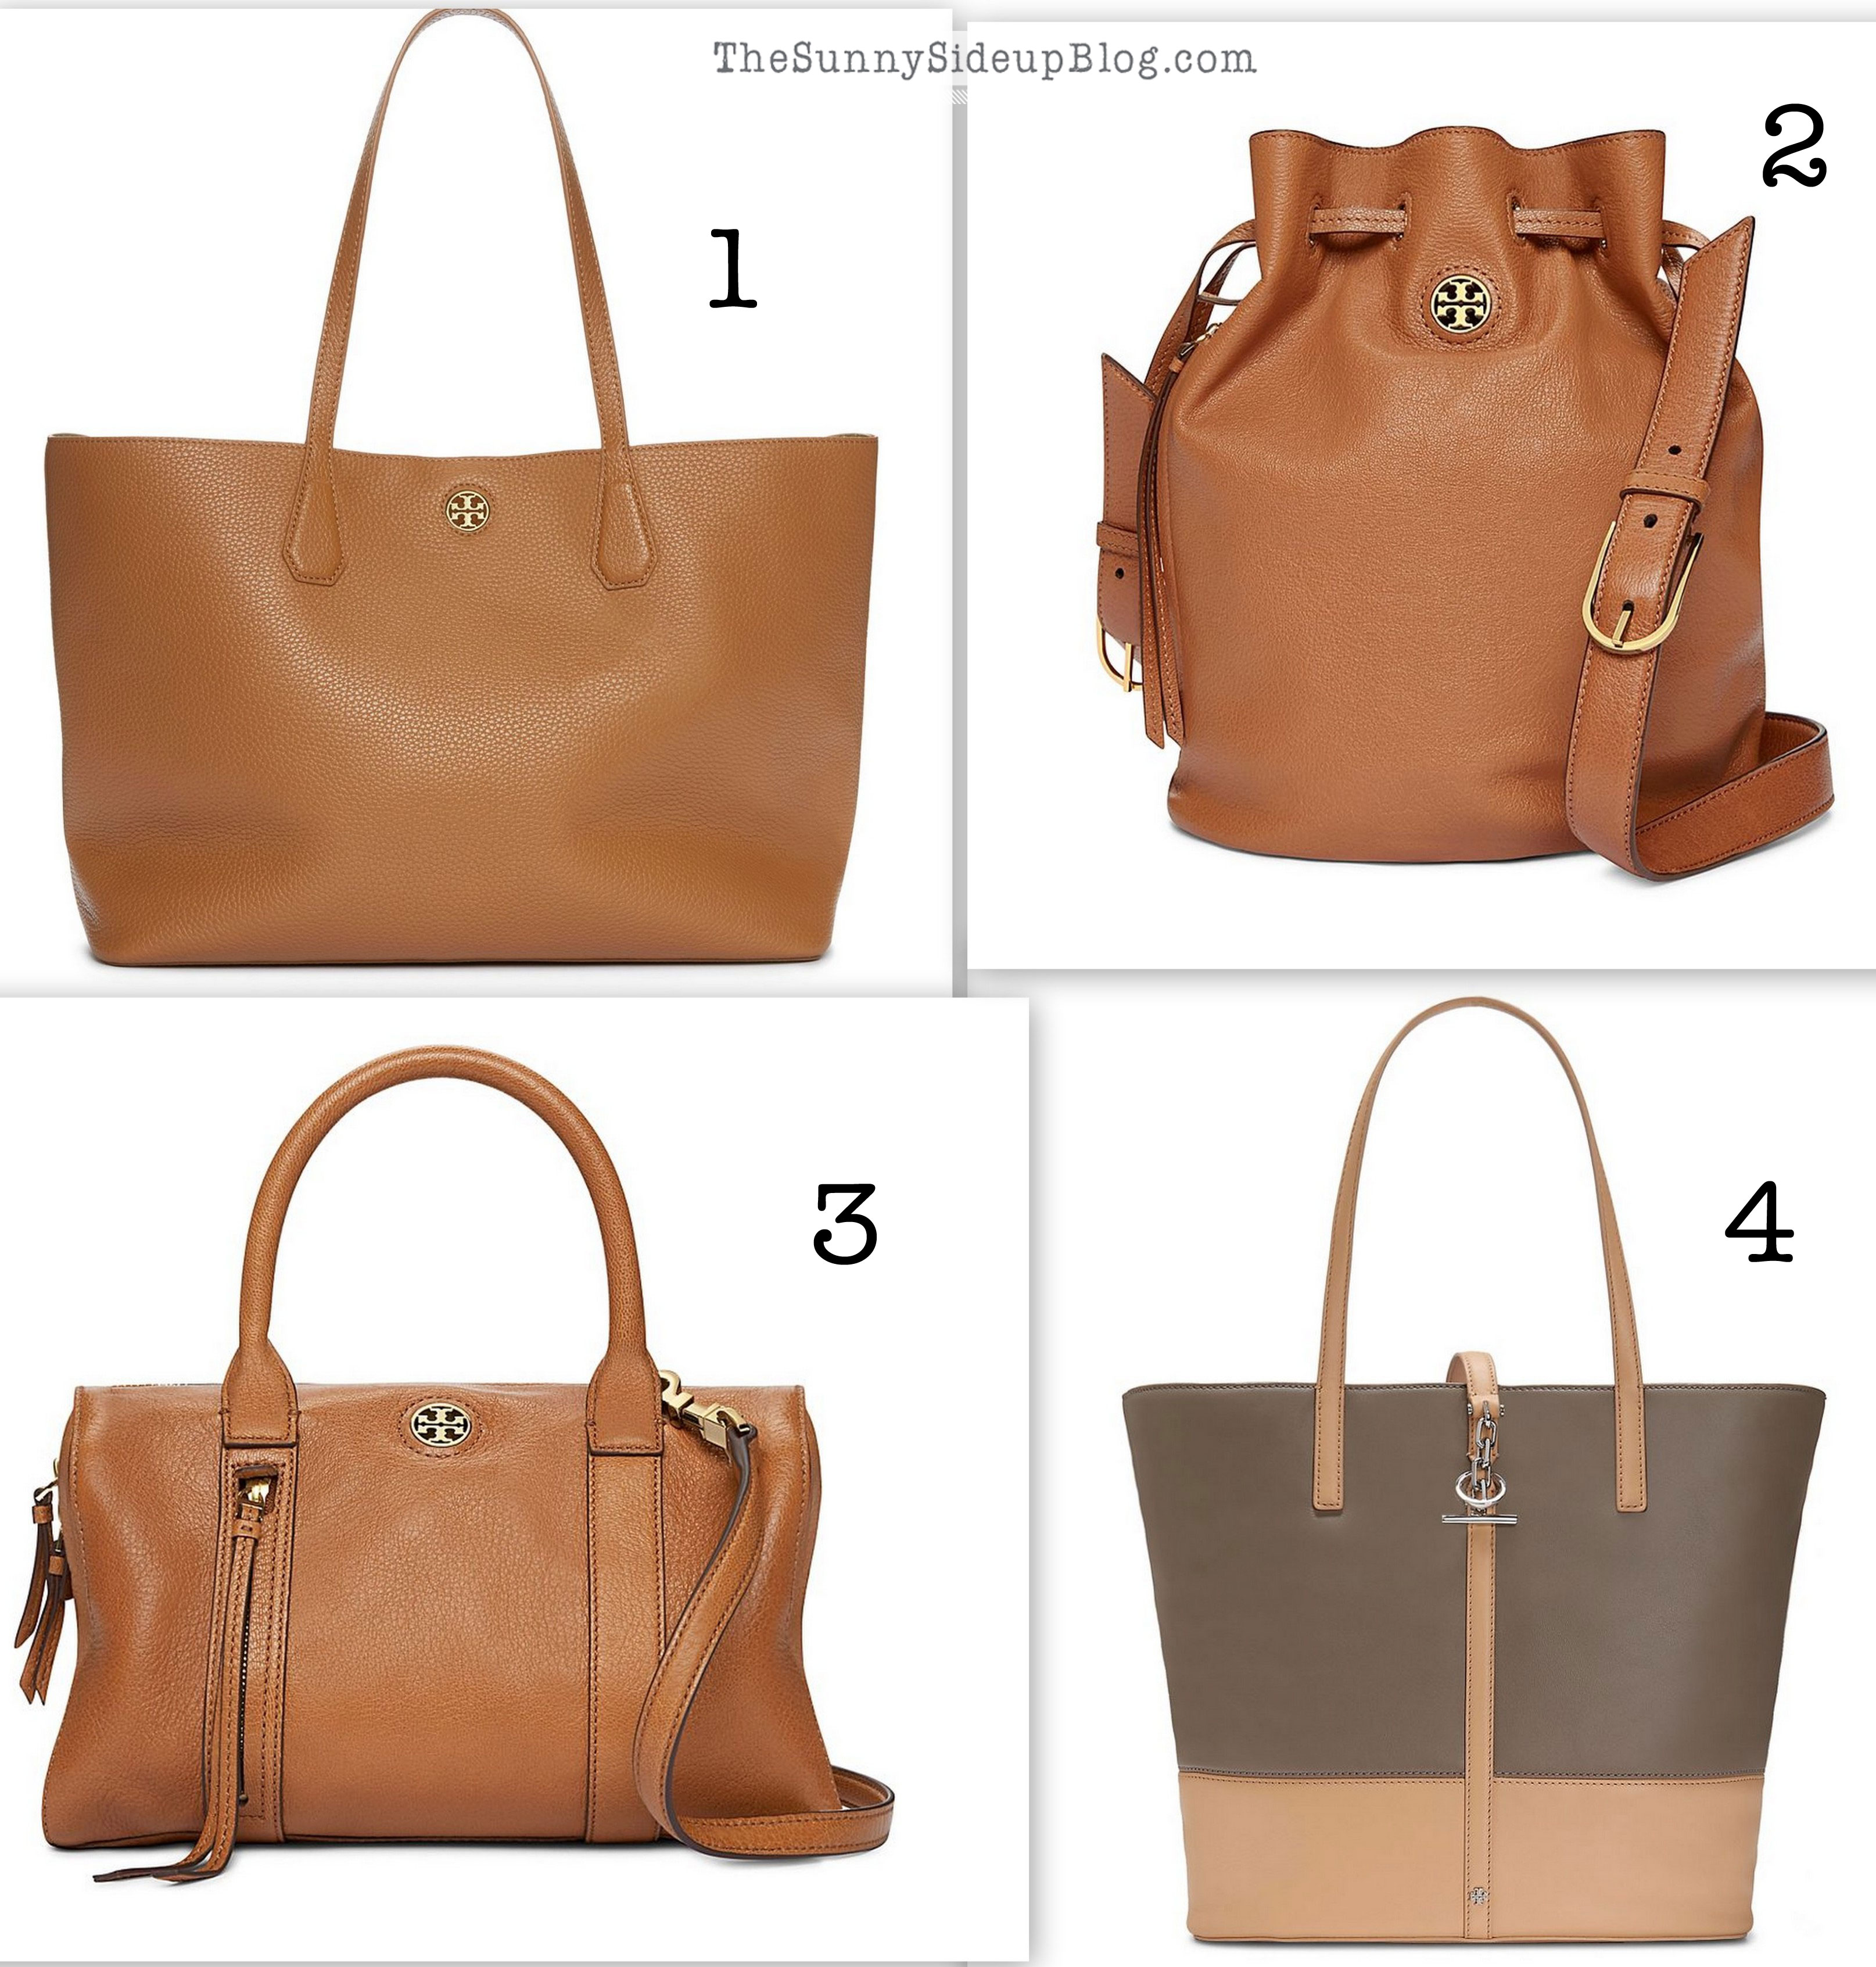 499c23446d28 Favorite handbags for Fall - The Sunny Side Up Blog